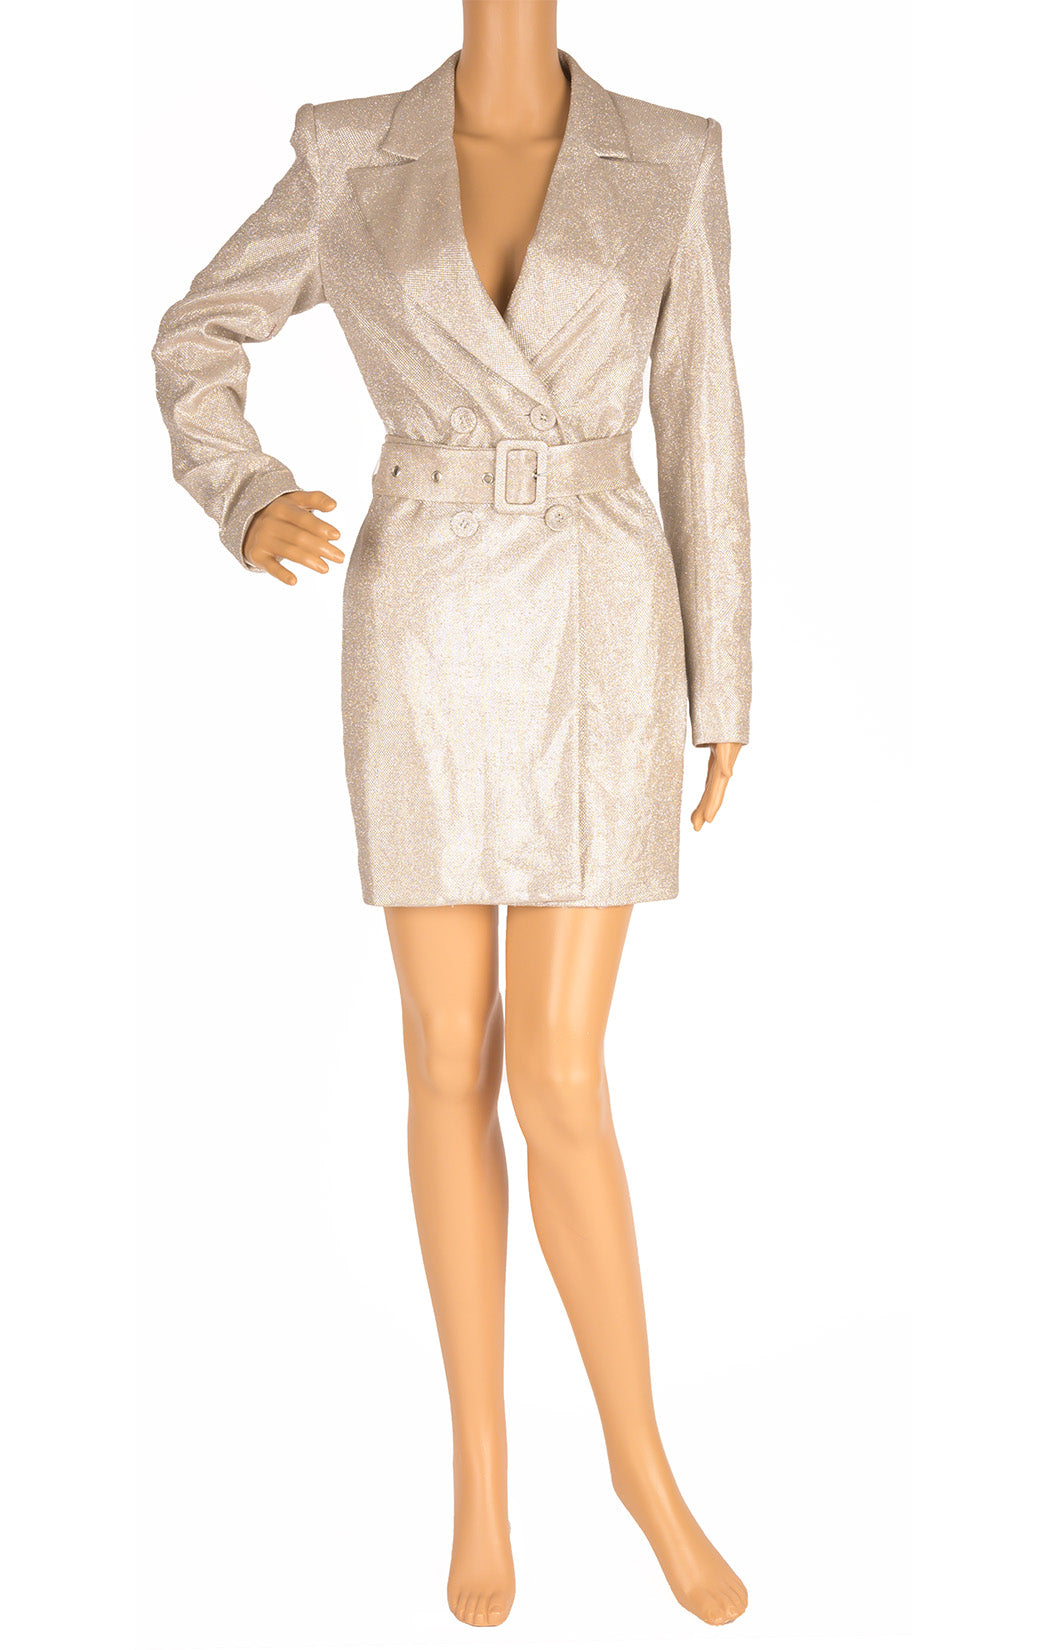 Front view of NO NAME Coat dress Size: Small